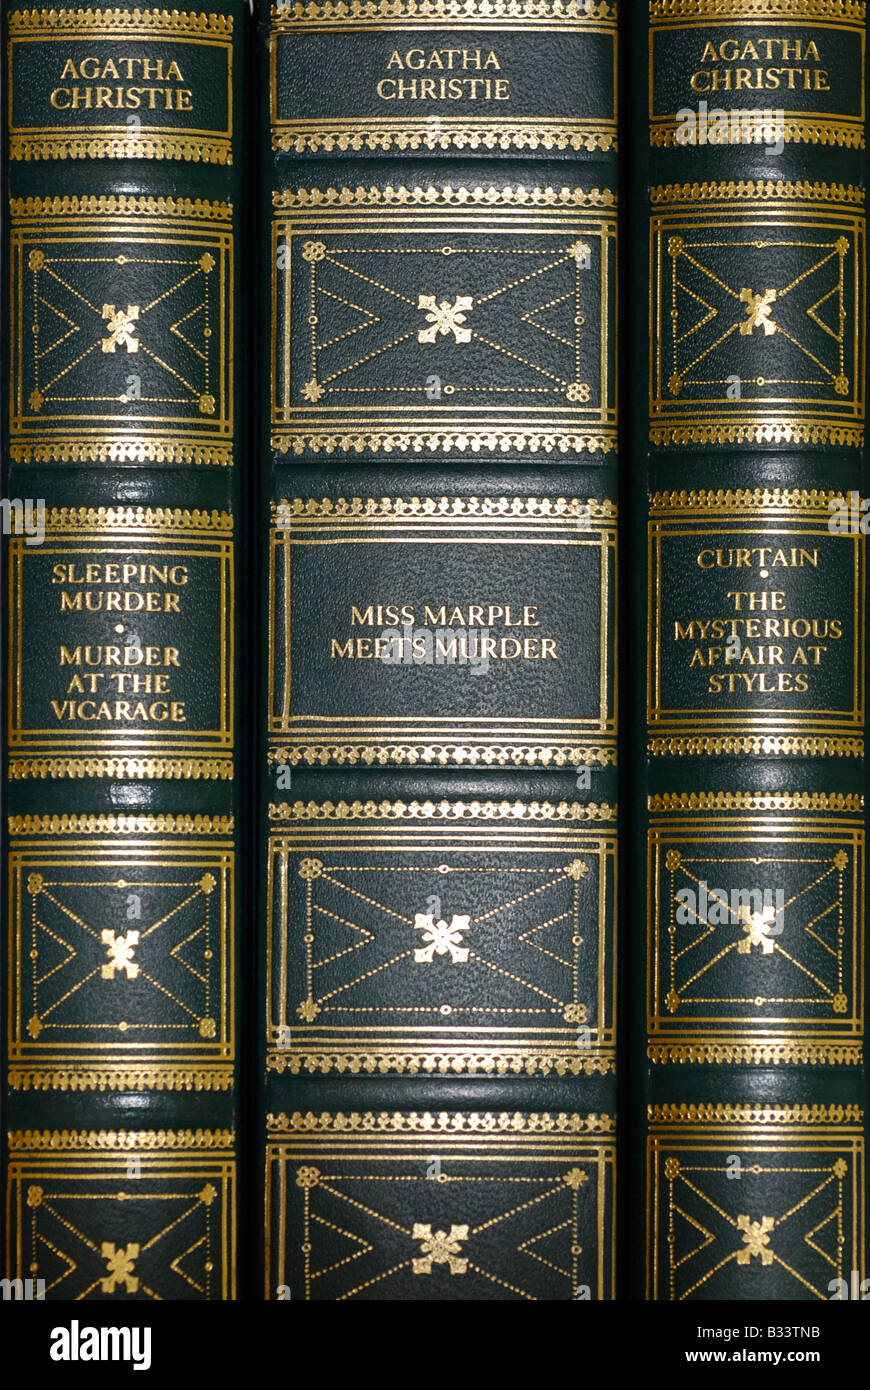 Book Spines of Leather Bound Books, Agatha Christie Stories - Stock Image